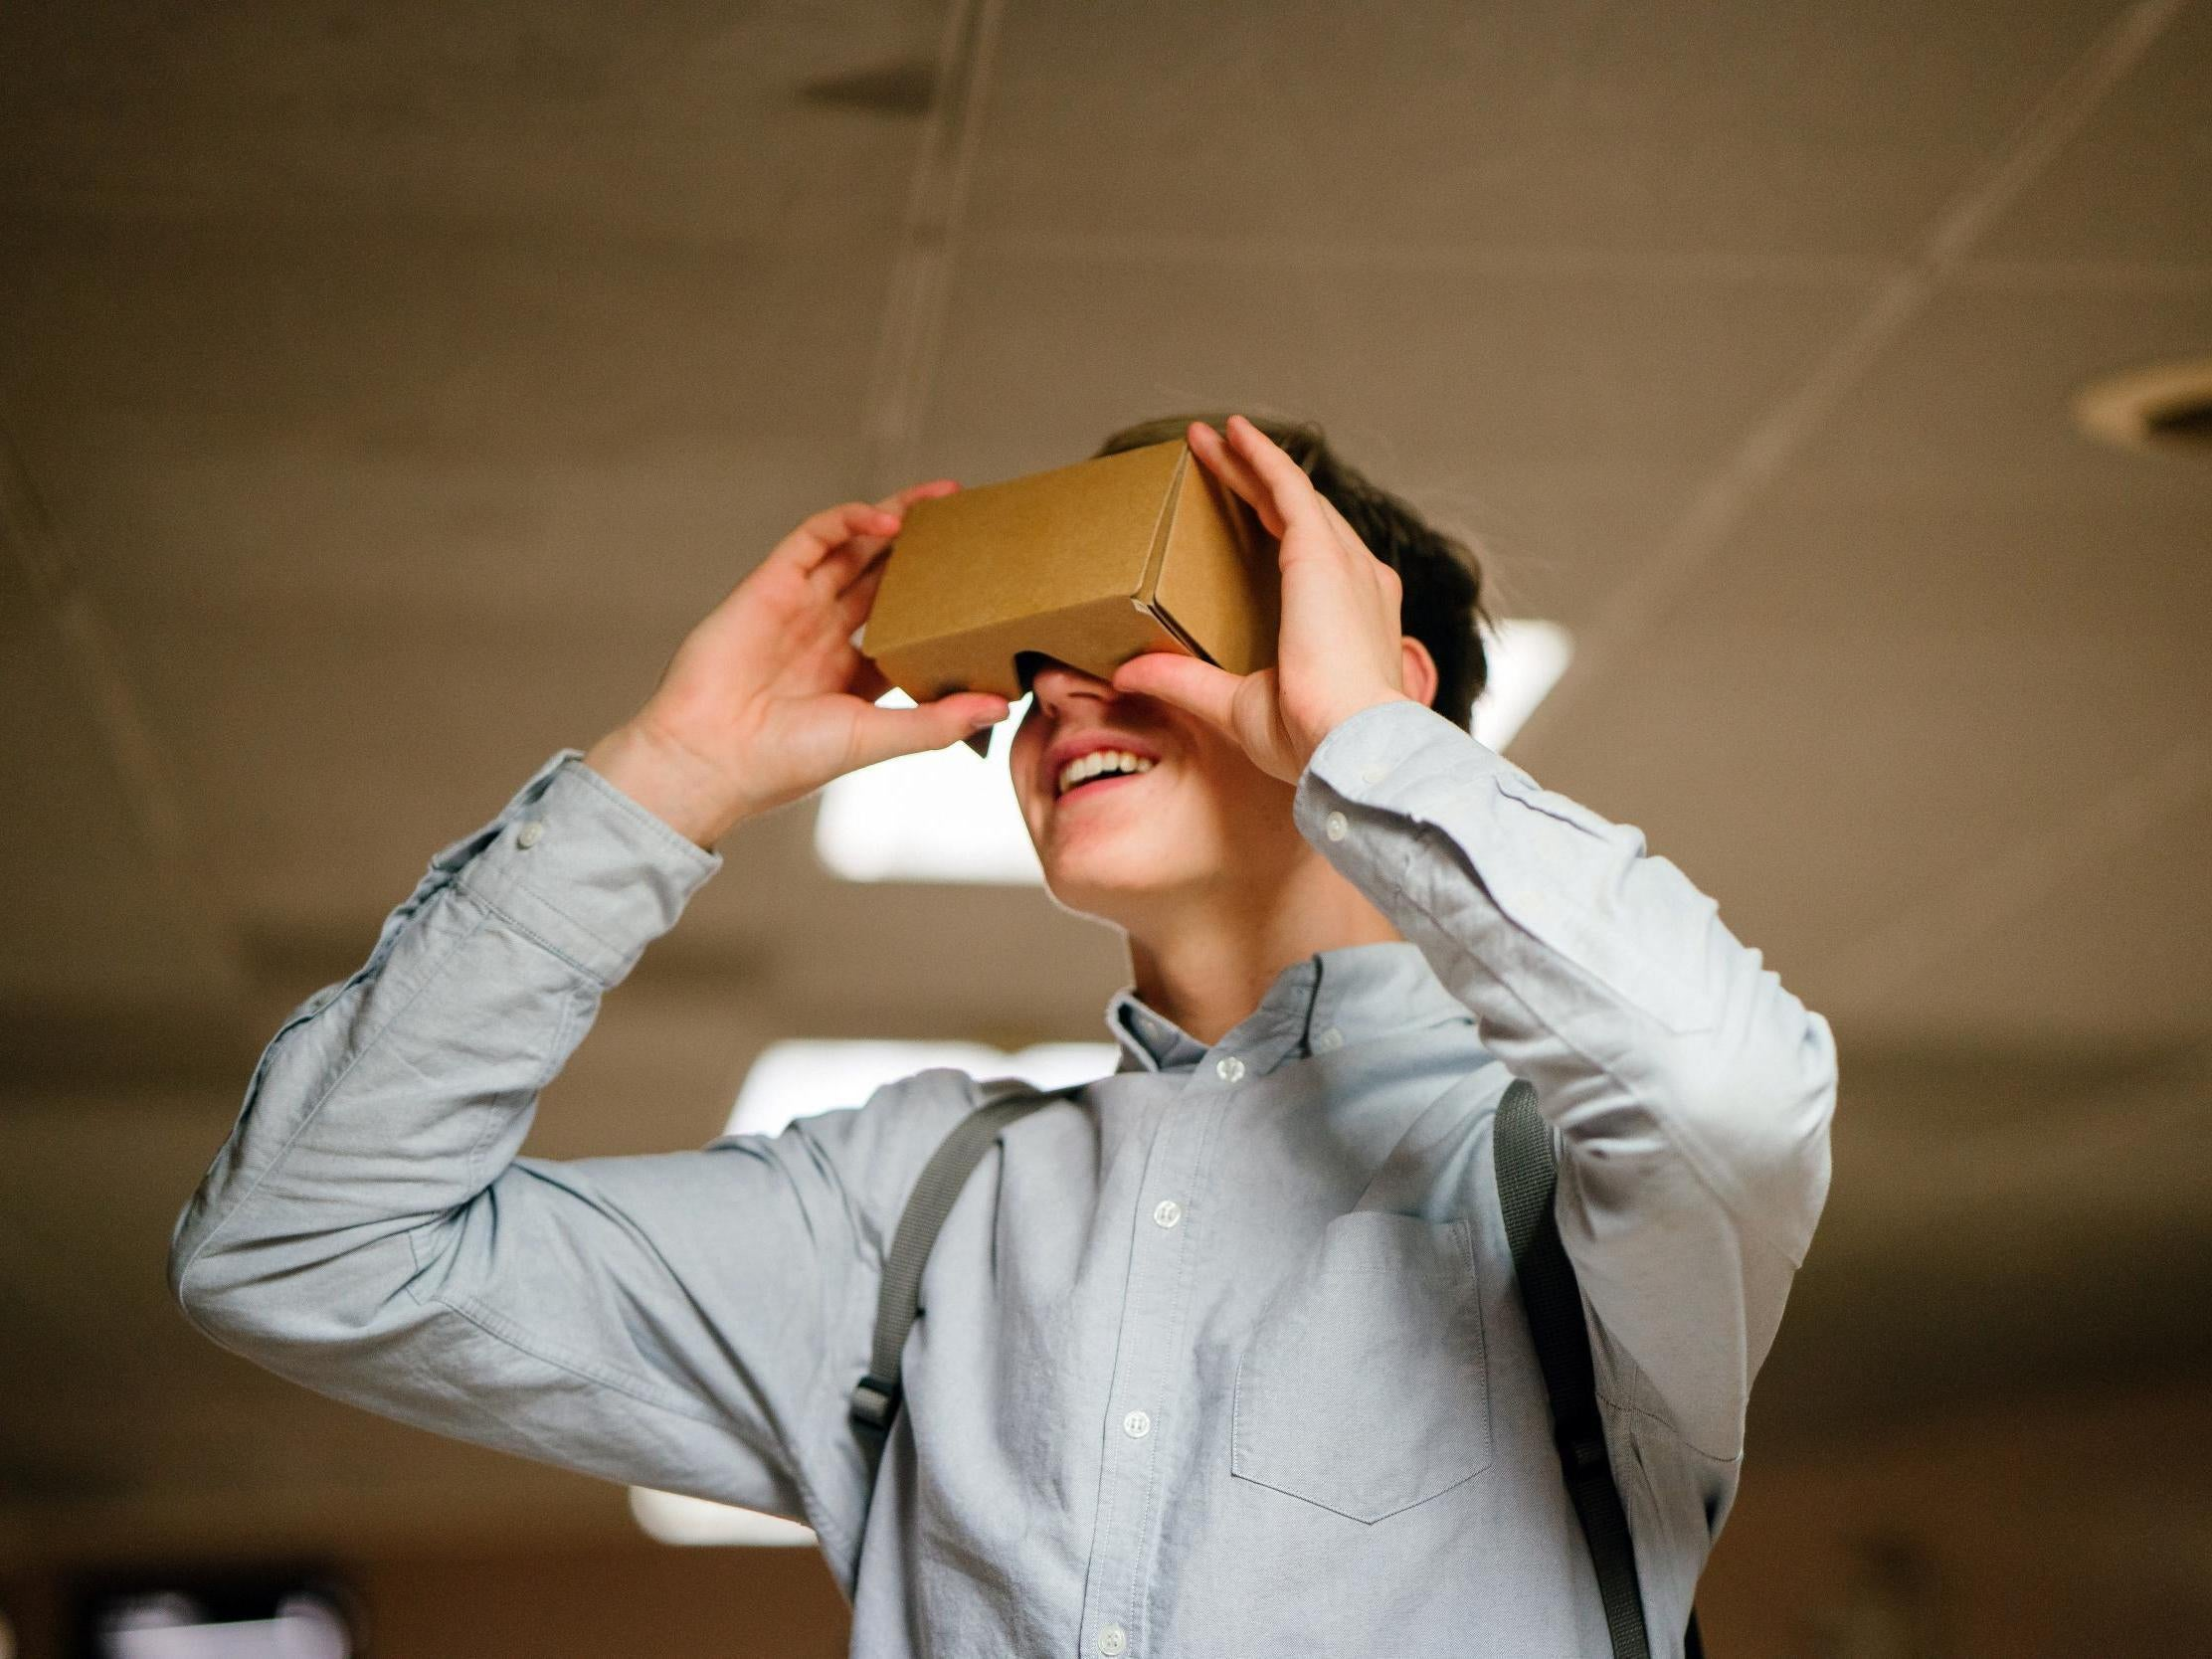 Virtual Reality has the potential to transform teaching and improve learning